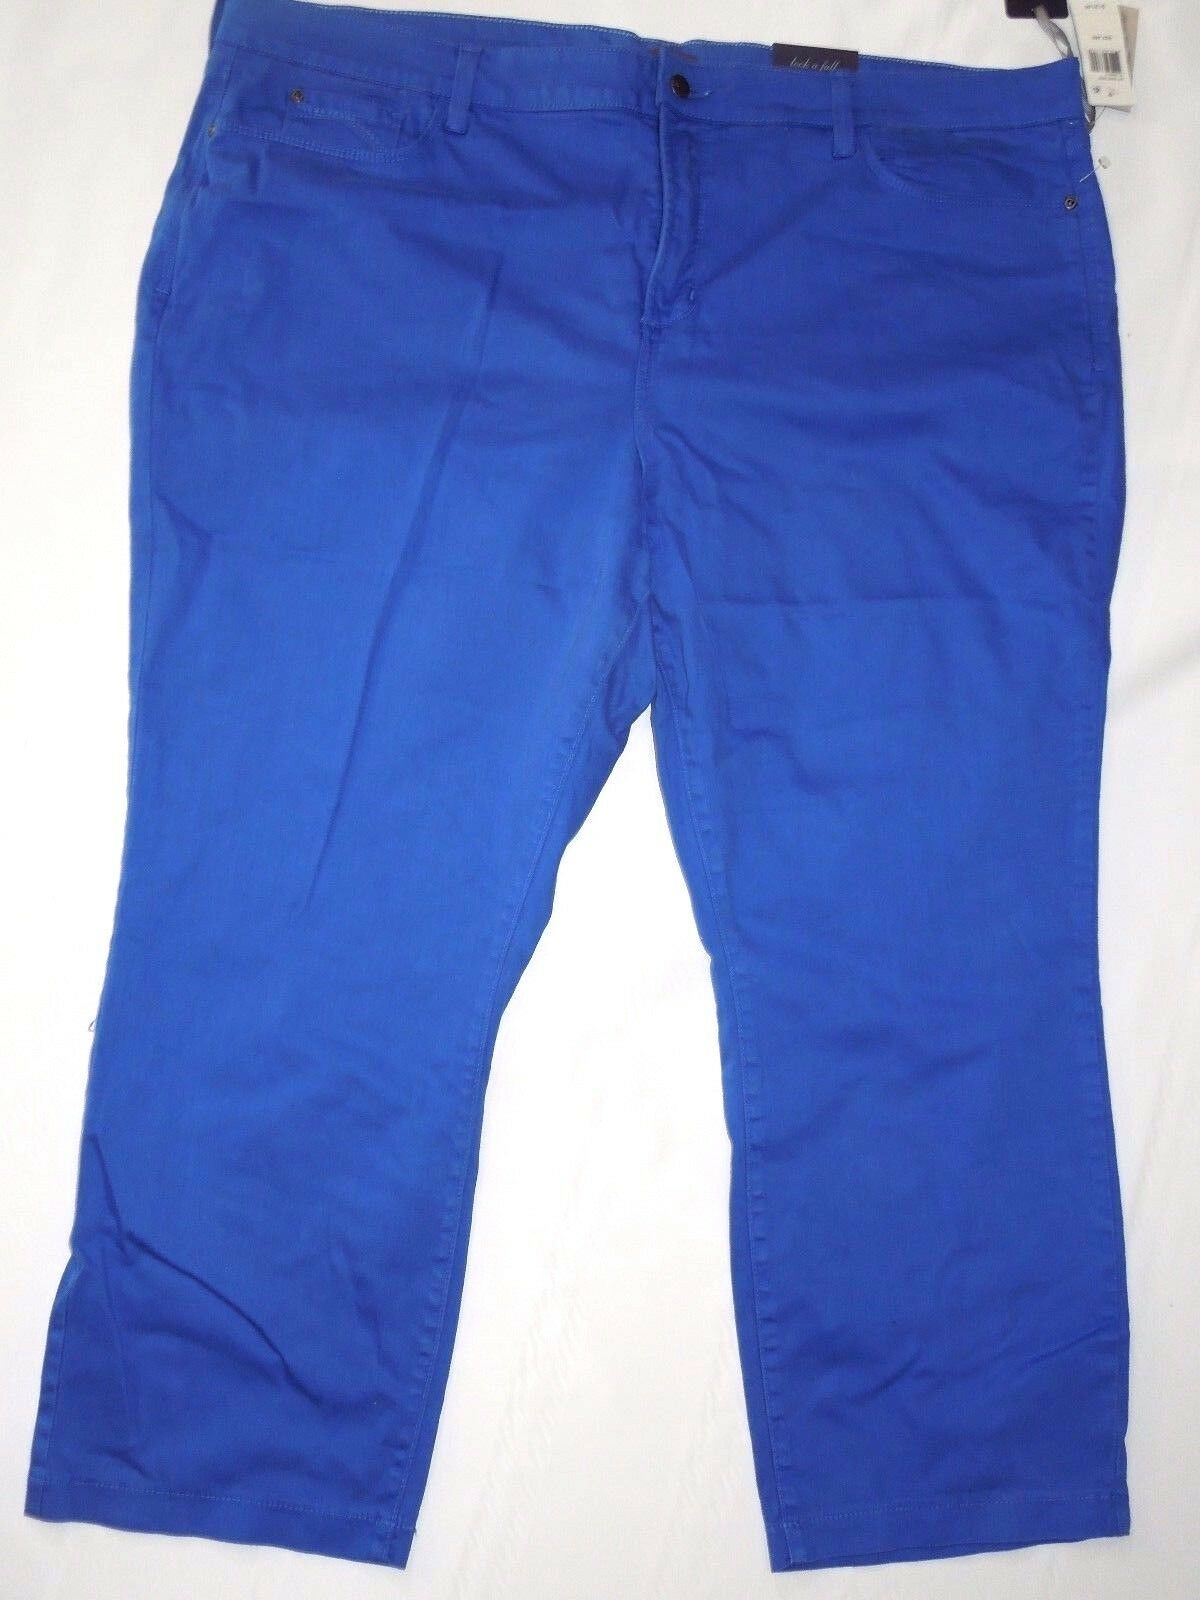 NYDJ Not Your Daughter's blueebell bluee ankle Jeans Size 24W